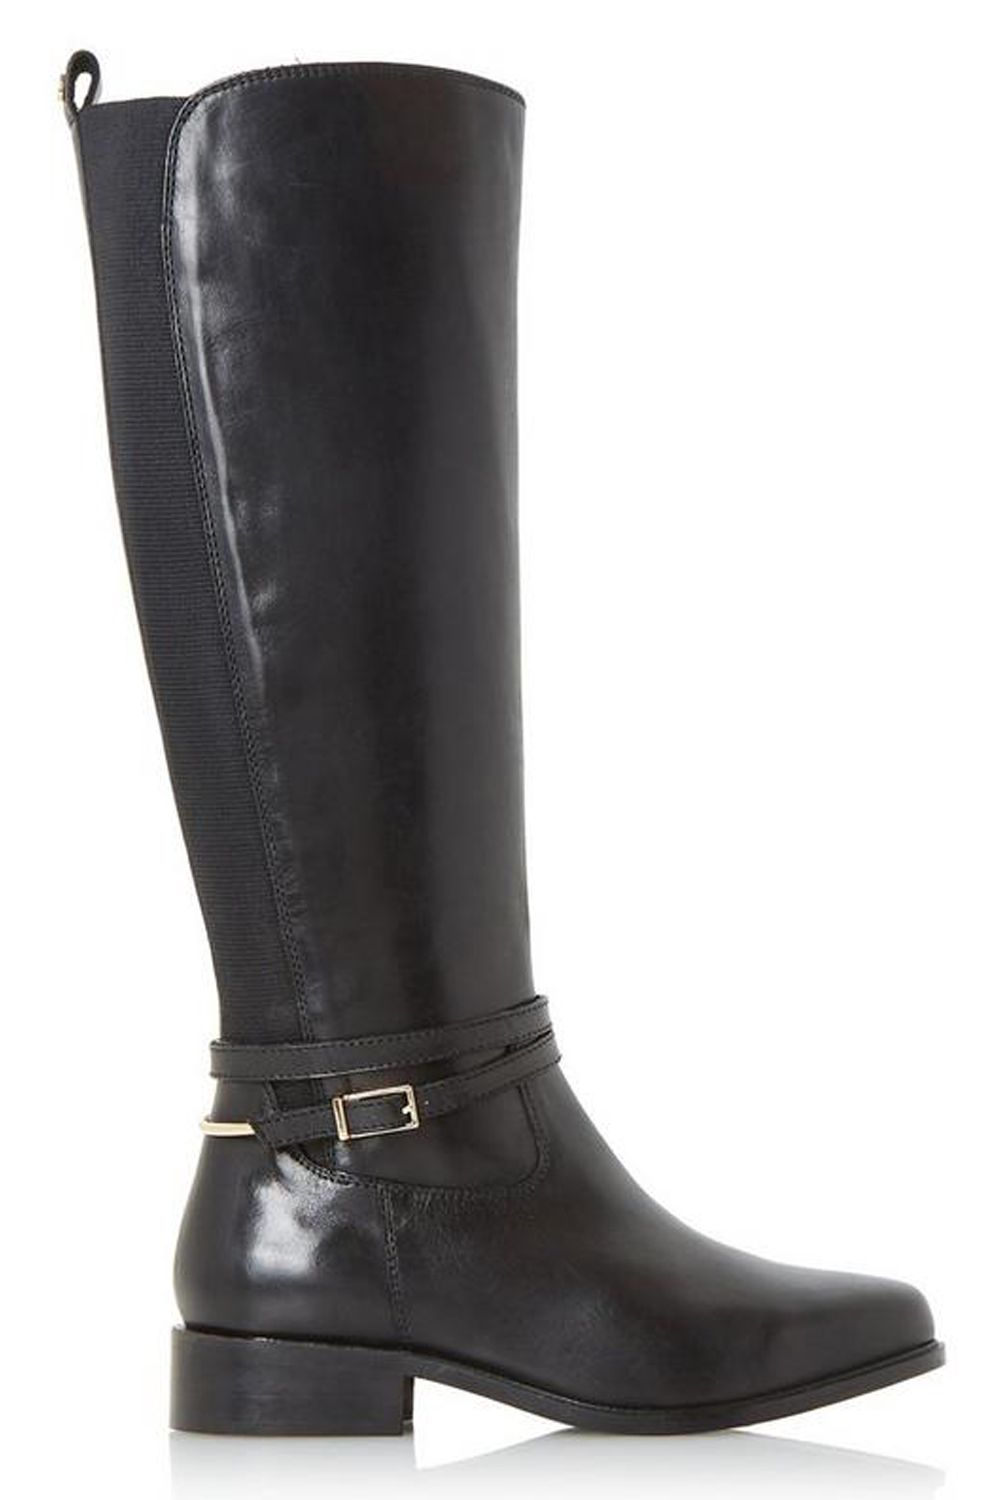 239b0a5665e Wide Calf Boots - 19 of the Best Wide Fit Boots for Spring Summer 2019